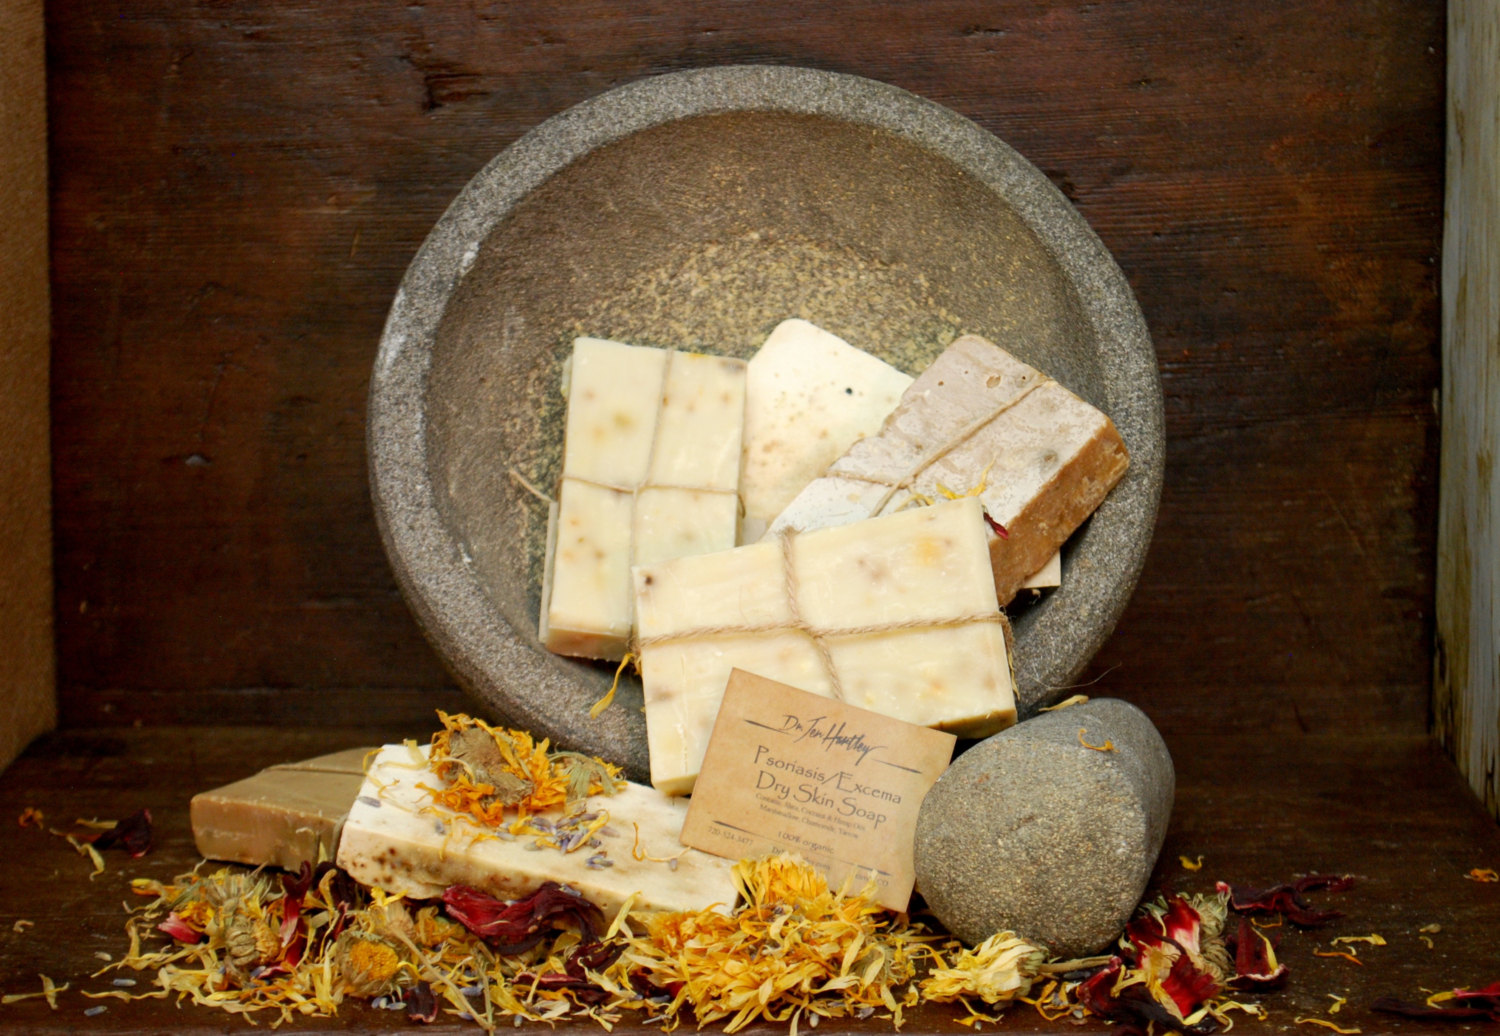 Psoriasis/Excema, Dry Skin Soap